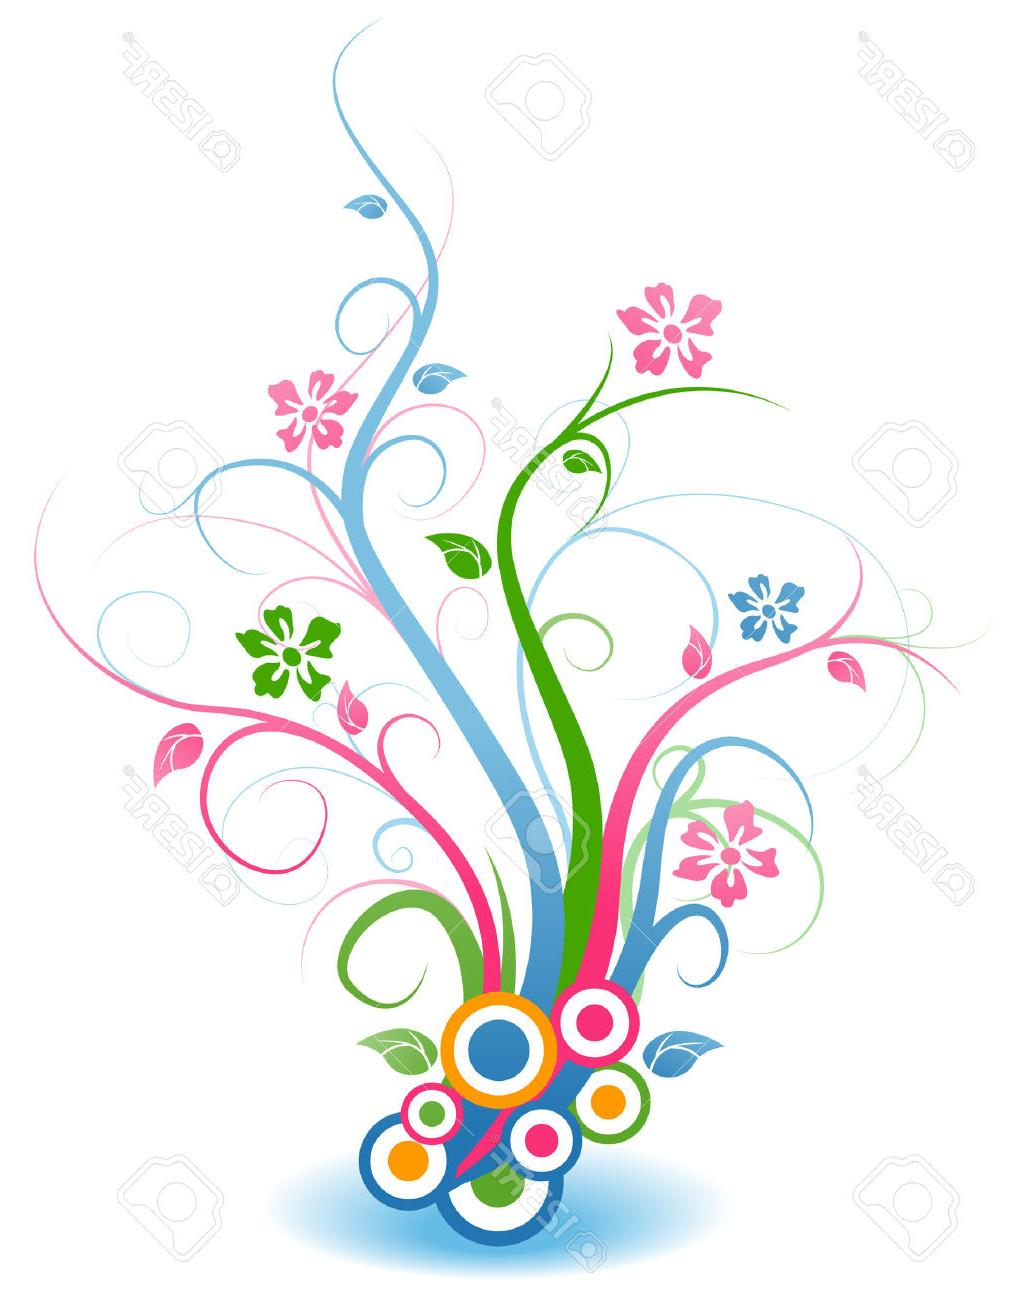 Flower Vines Clipart | Free download on ClipArtMag